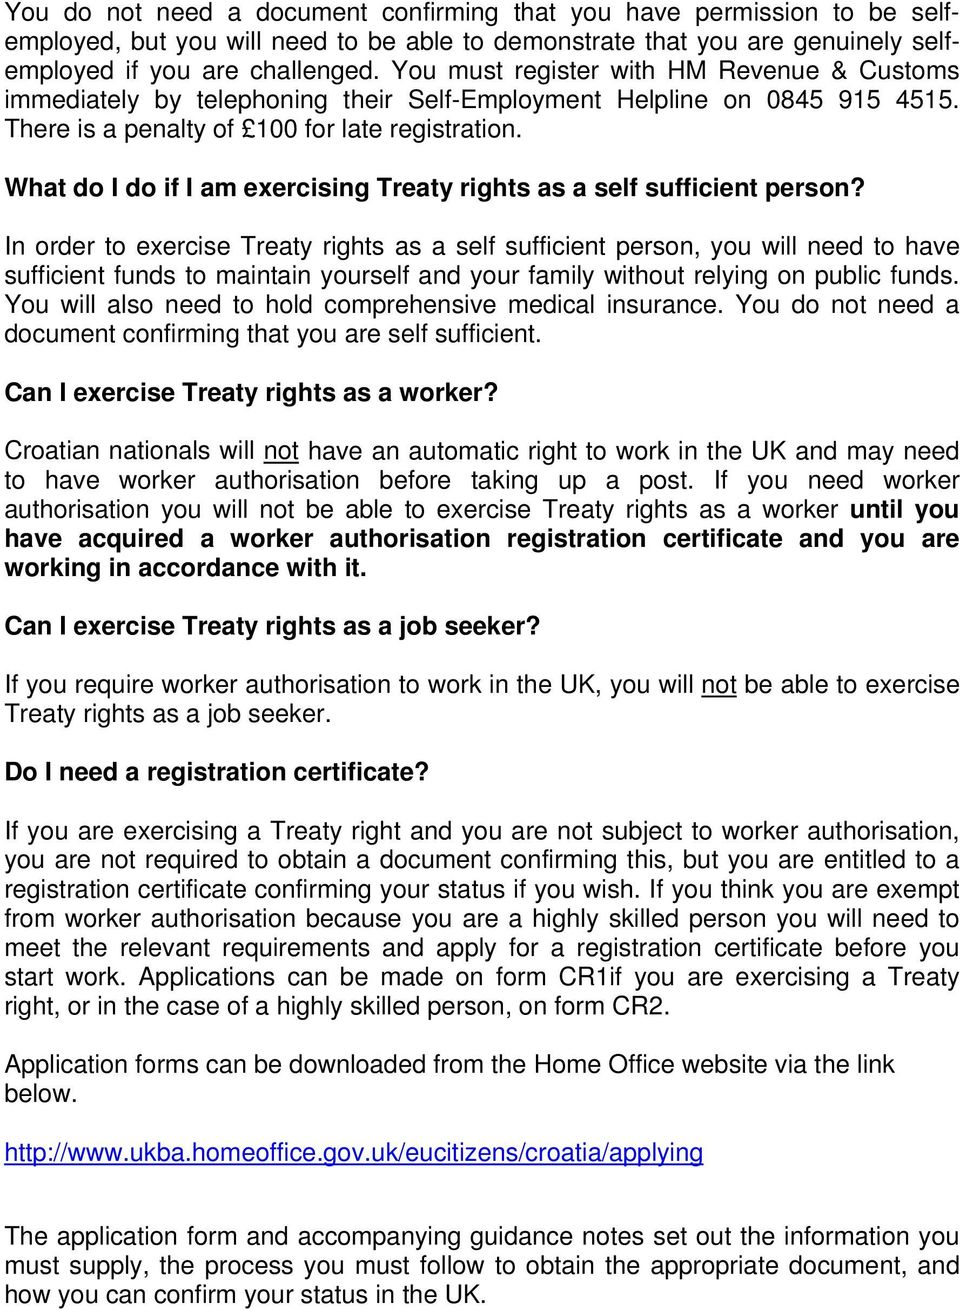 What do I do if I am exercising Treaty rights as a self sufficient person?